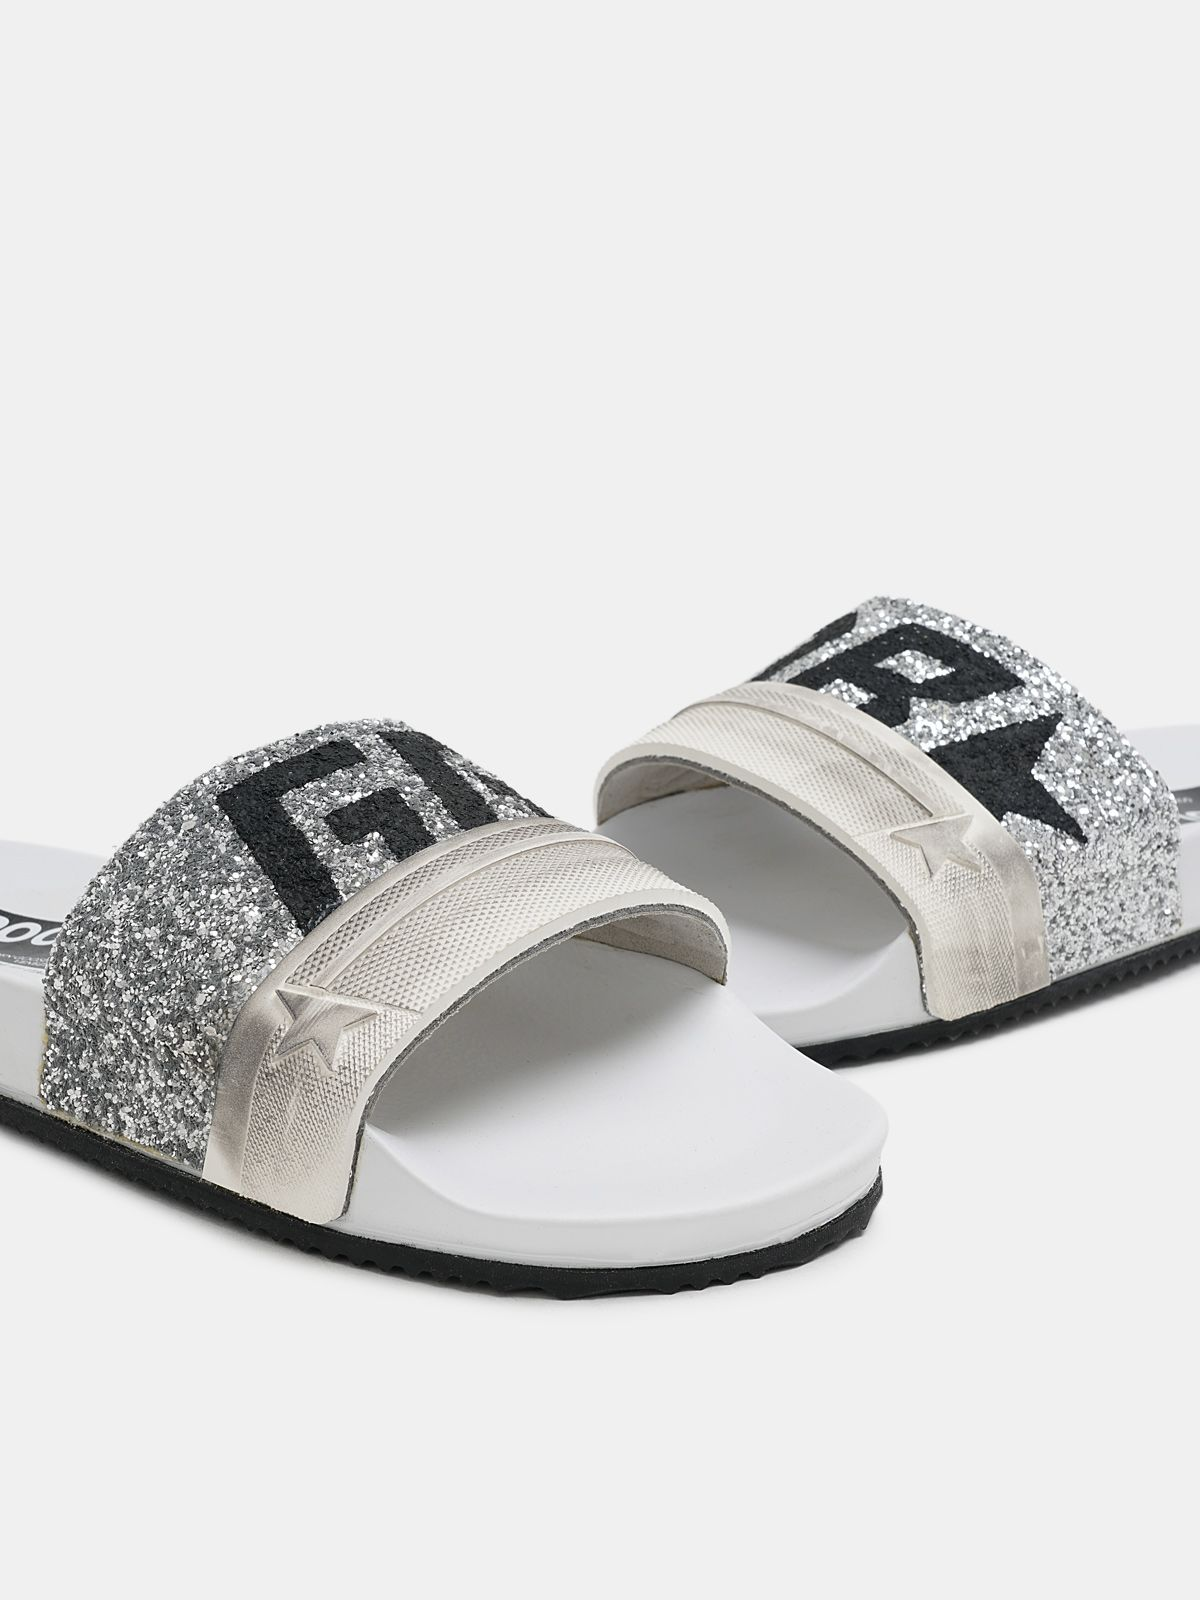 Golden Goose - Women's Poolstars with silver glitter and logo in